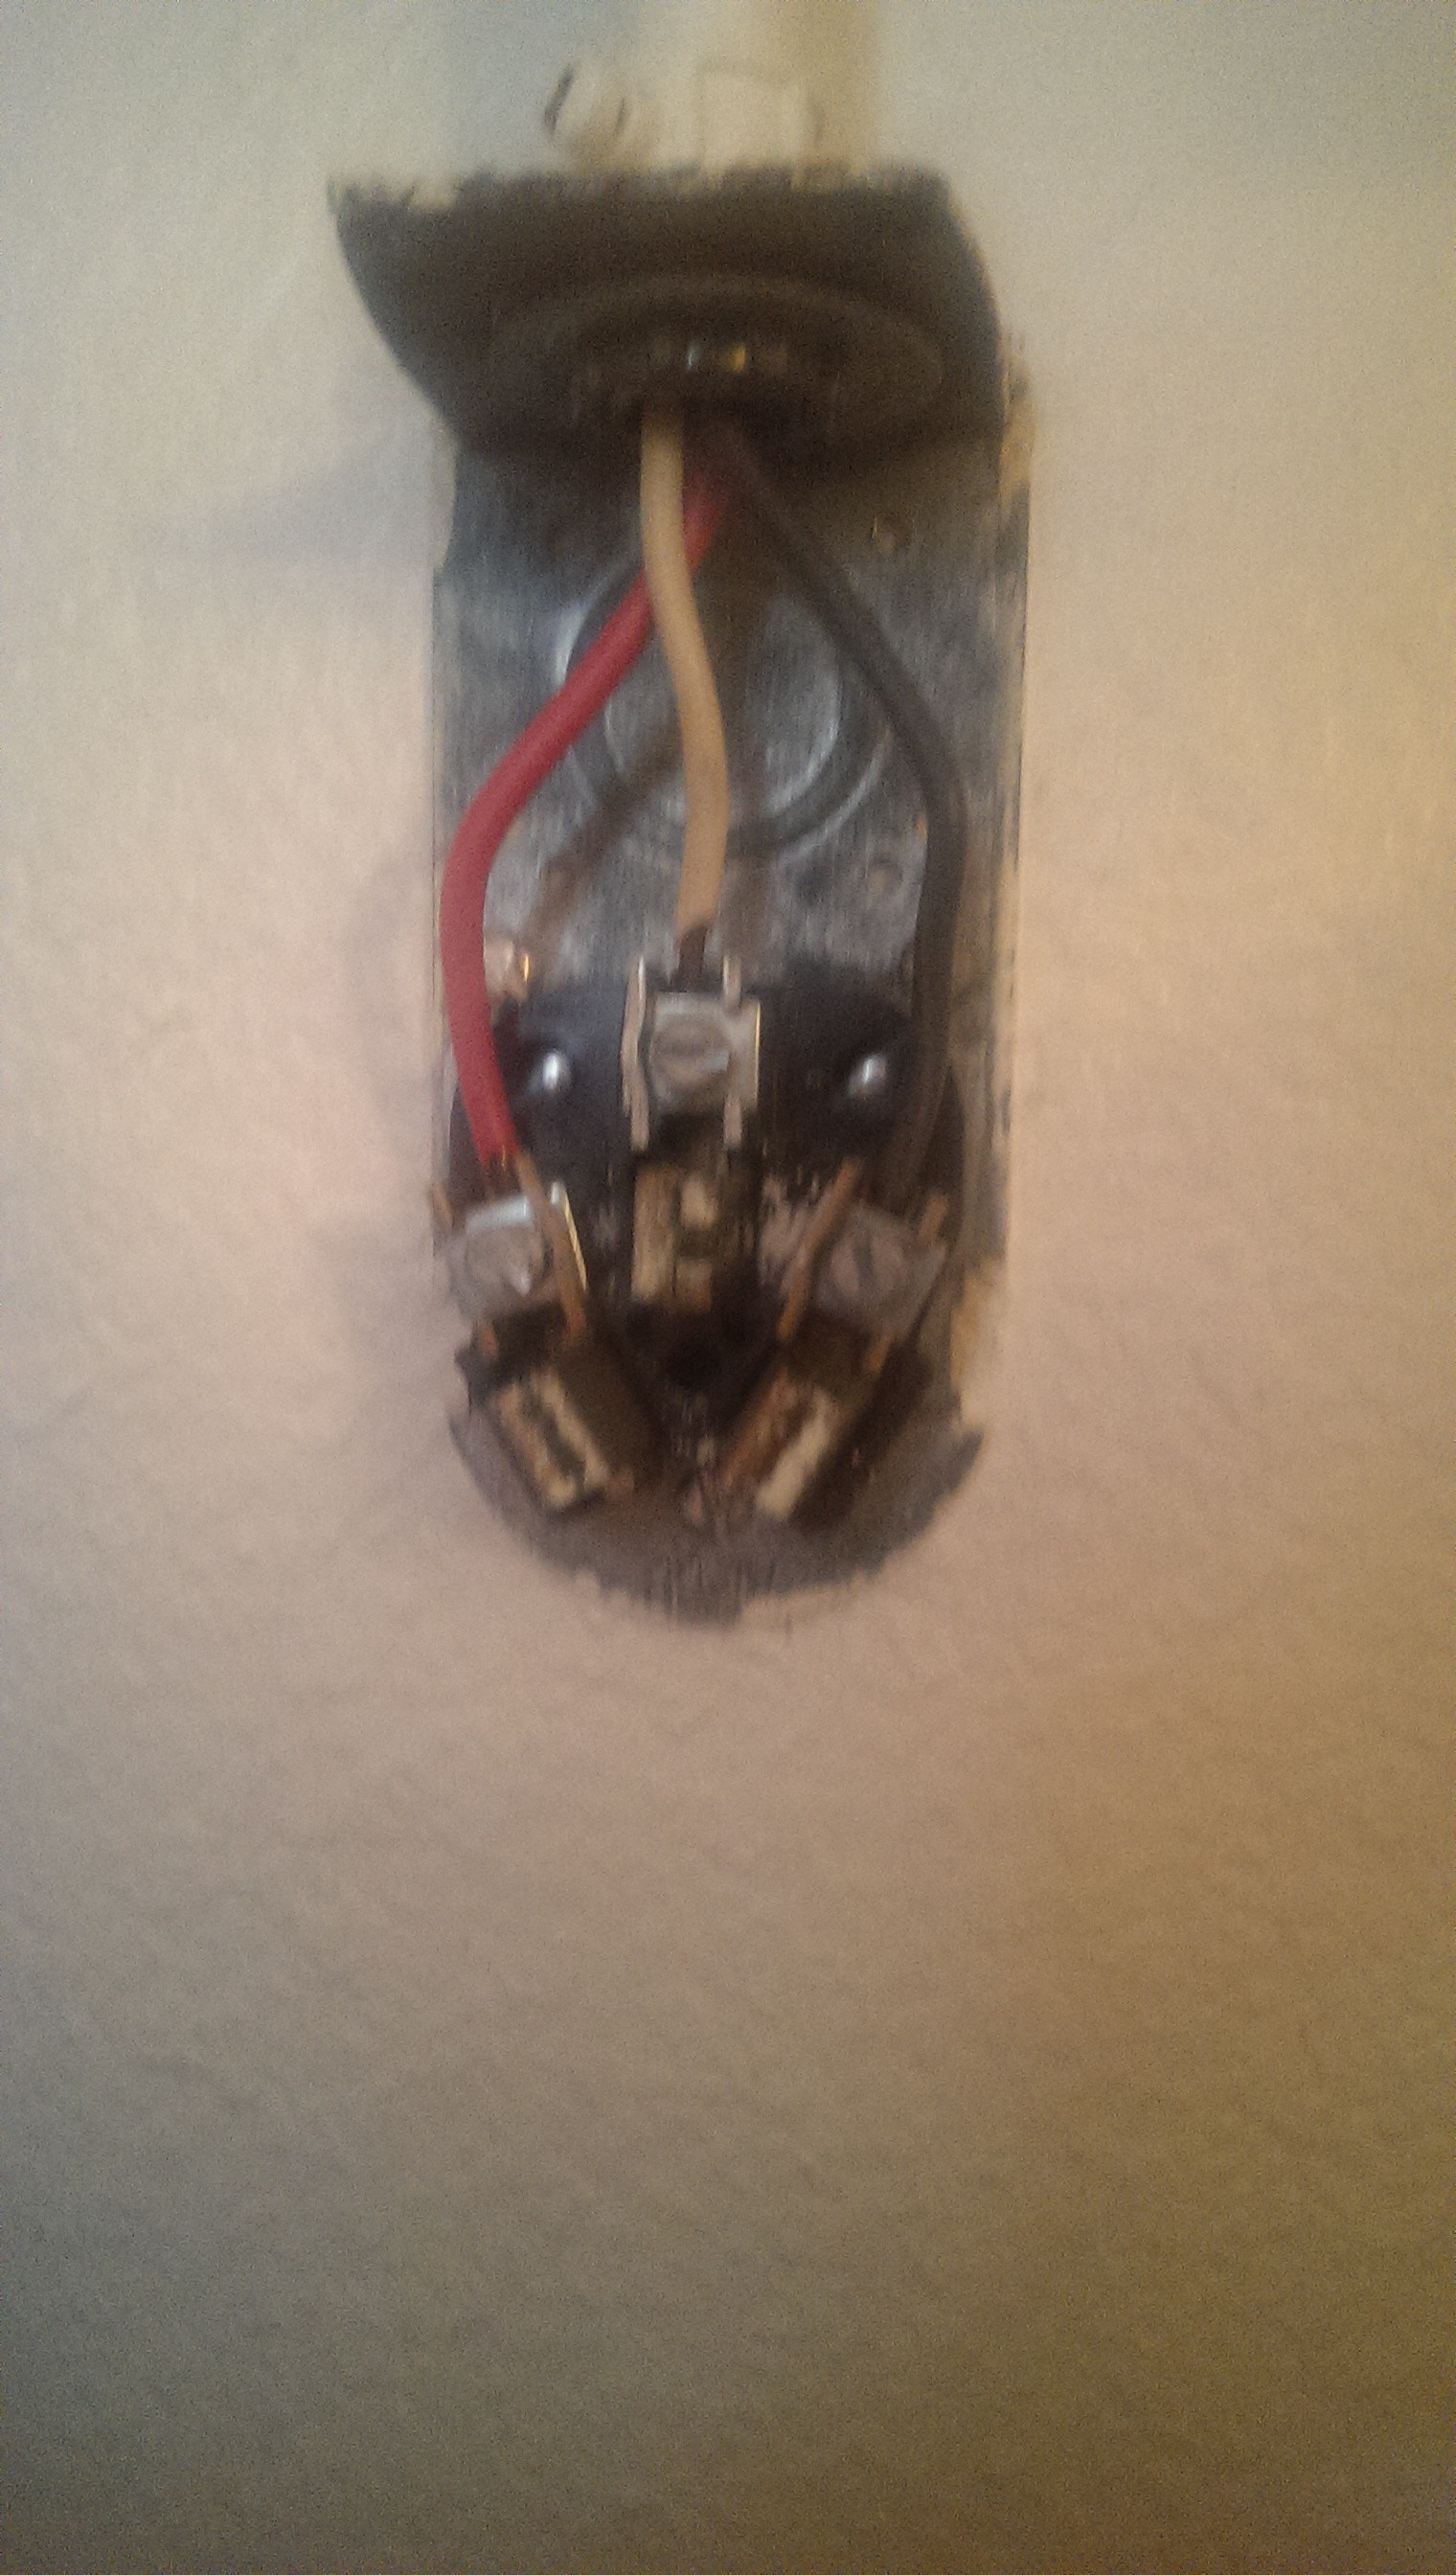 Changing my 3-prong dryer outlet to a 4 prong (sanity check) | Homebrew  Talk - Beer, Wine, Mead, & Cider Brewing Discussion Forum | Dryer Receptacle Wiring |  | Homebrew Talk